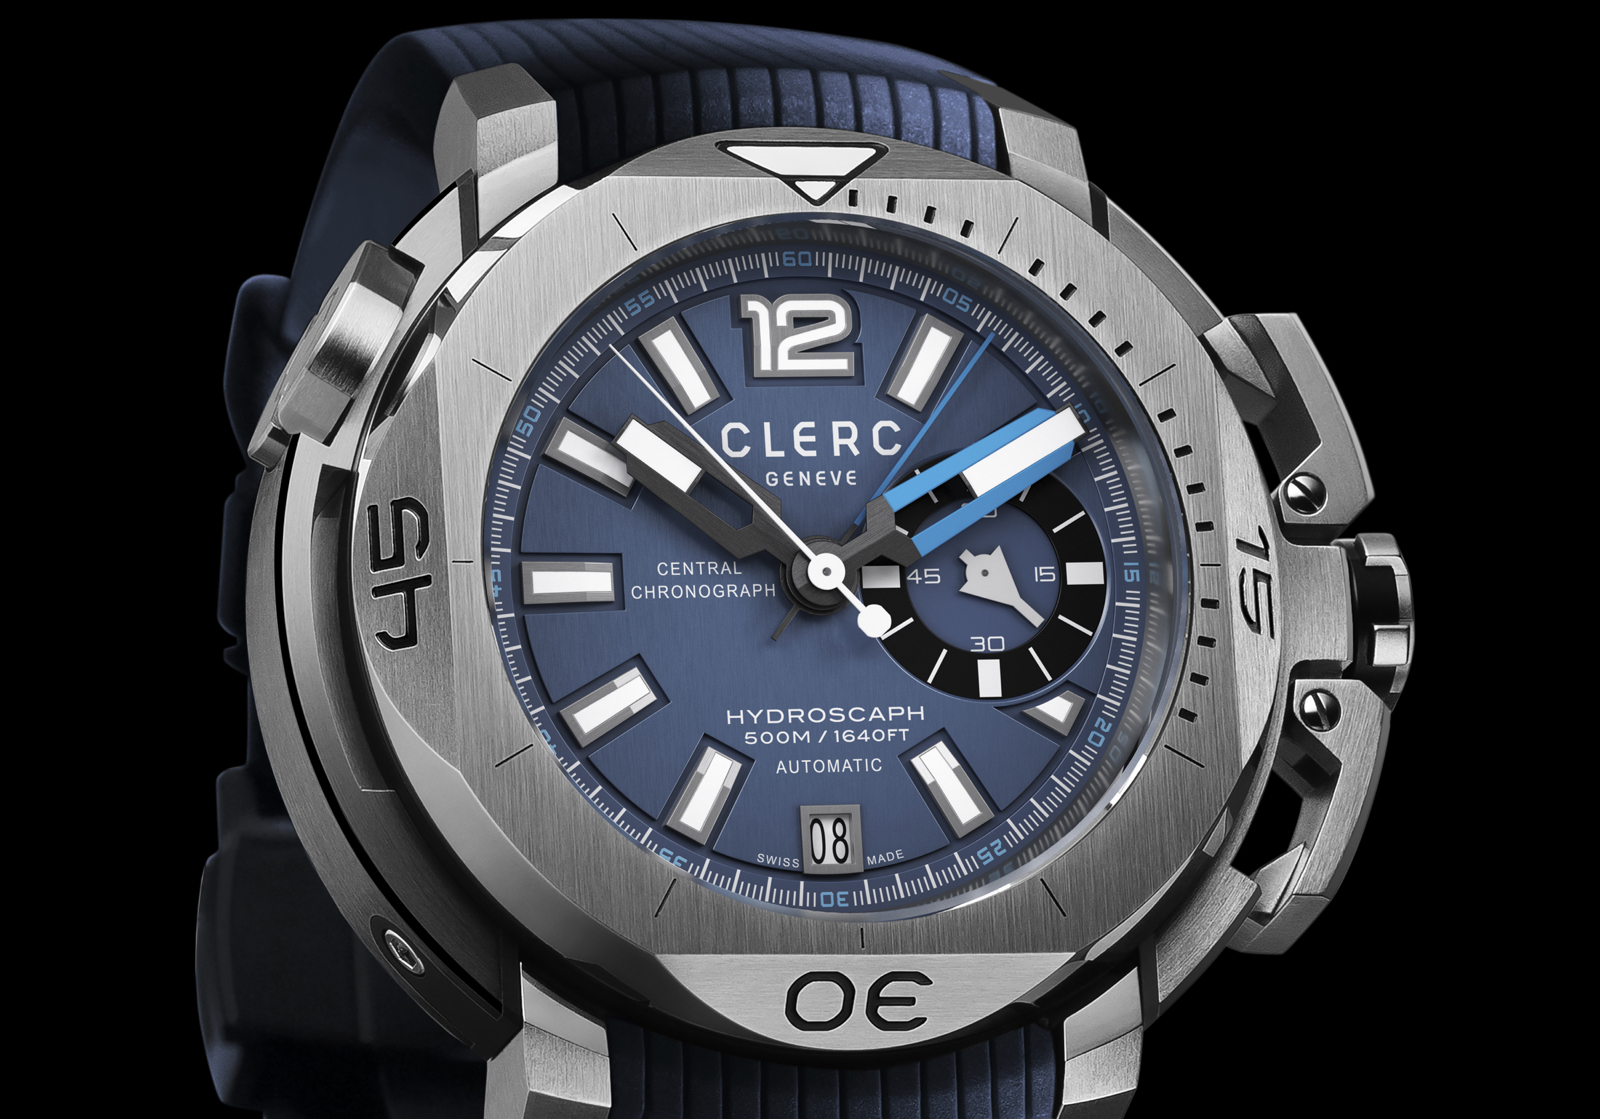 Clerc Hydroscaph Central Chronograph Small Second Dial